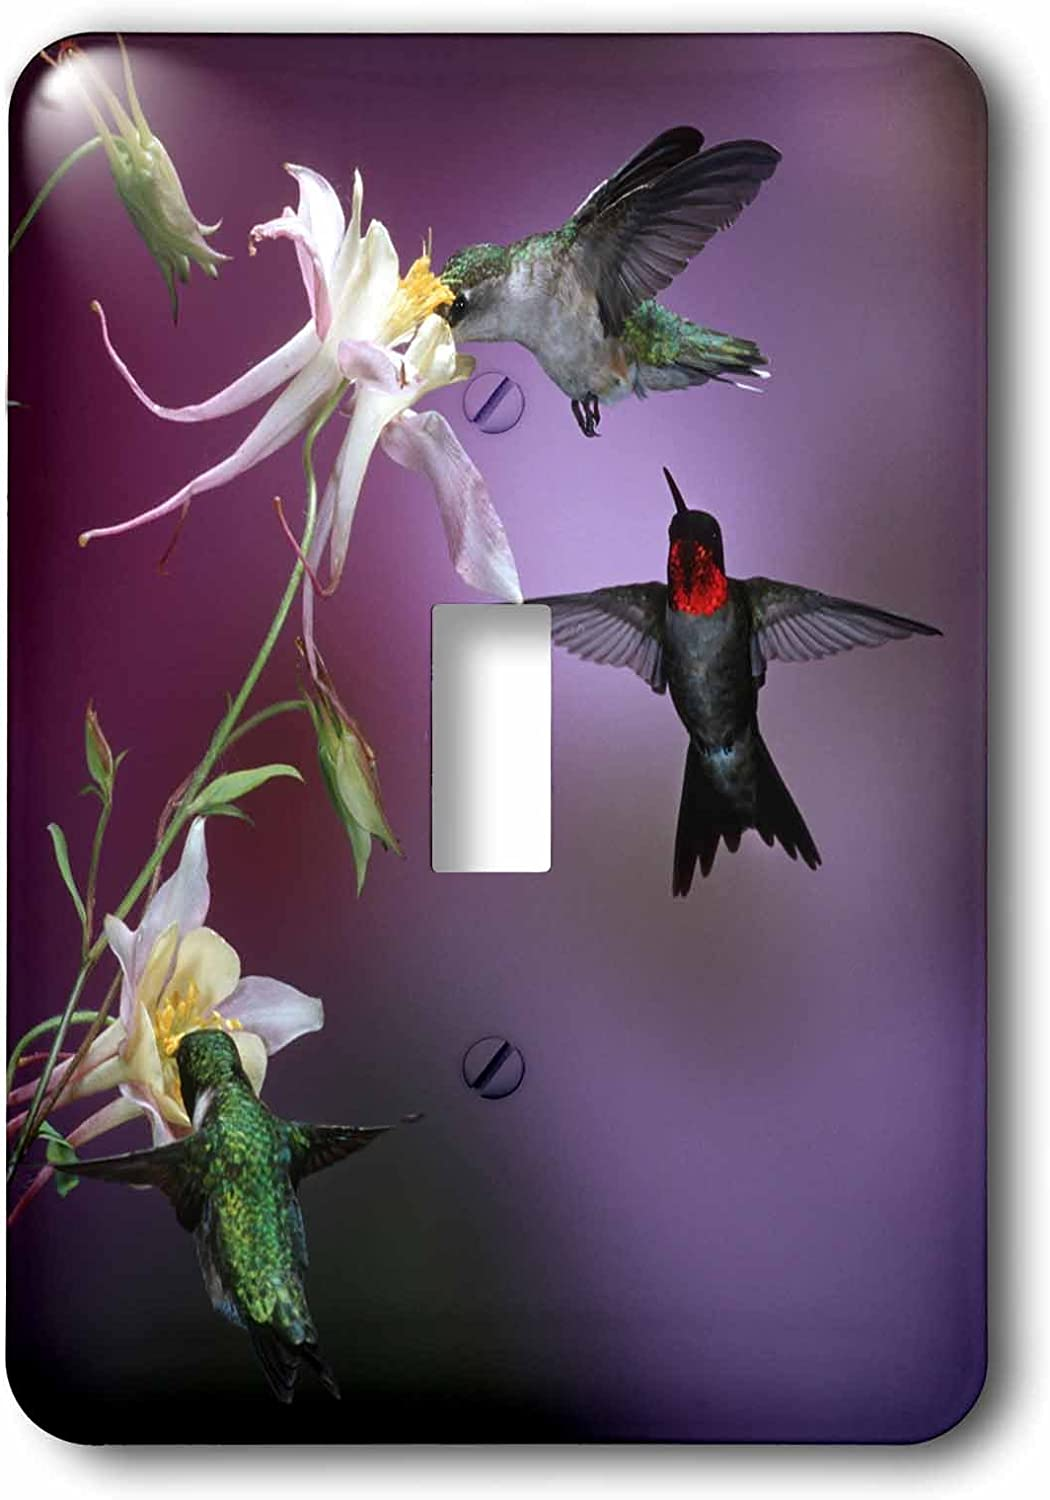 3drose Lsp 250979 1 Single Toggle Switch Ruby Throated Hummingbirds Males And Female At Mckana Hybrid Columbine Amazon Com